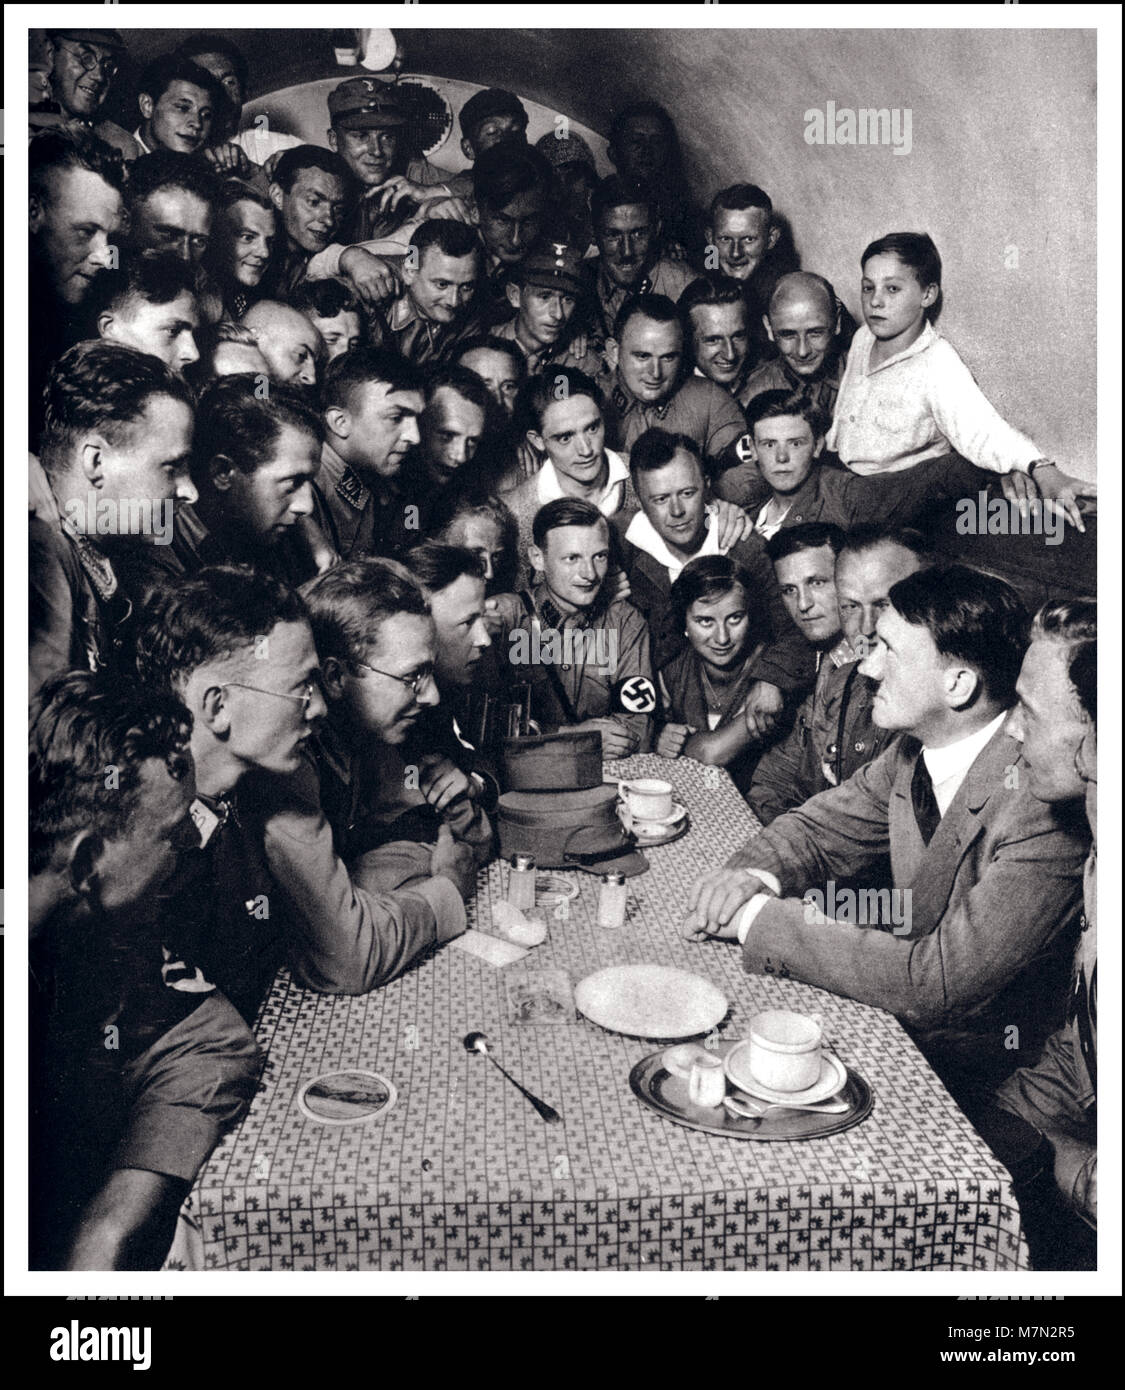 1933 Adolf Hitler posed propaganda image political meeting with SA men and other admirers in the basement casino - Stock Image